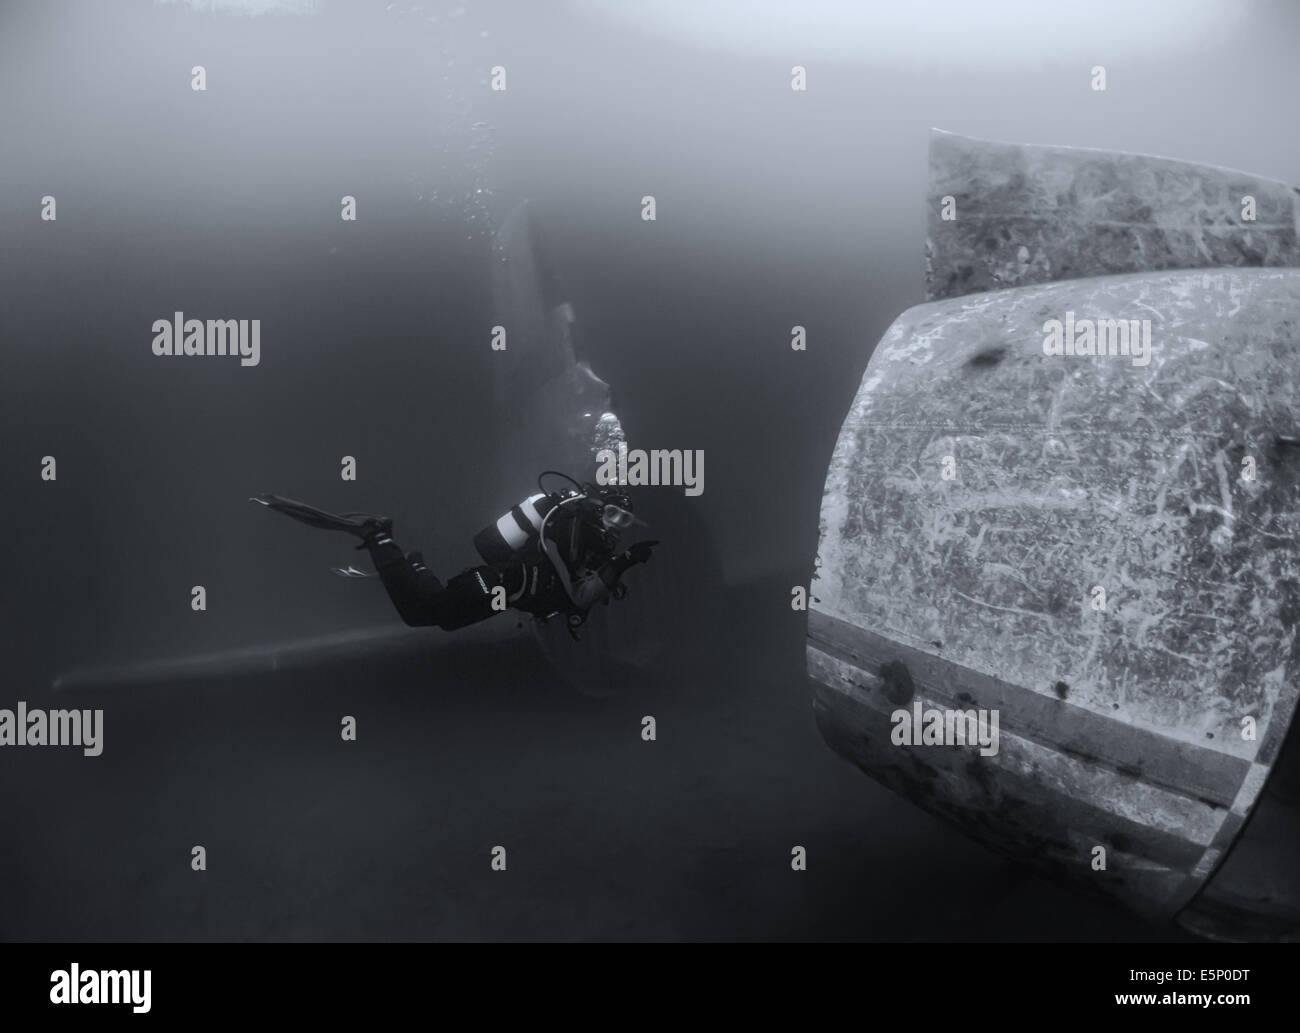 Scuba diver diving on an aeroplane wreck, Capernwray, UK - Stock Image